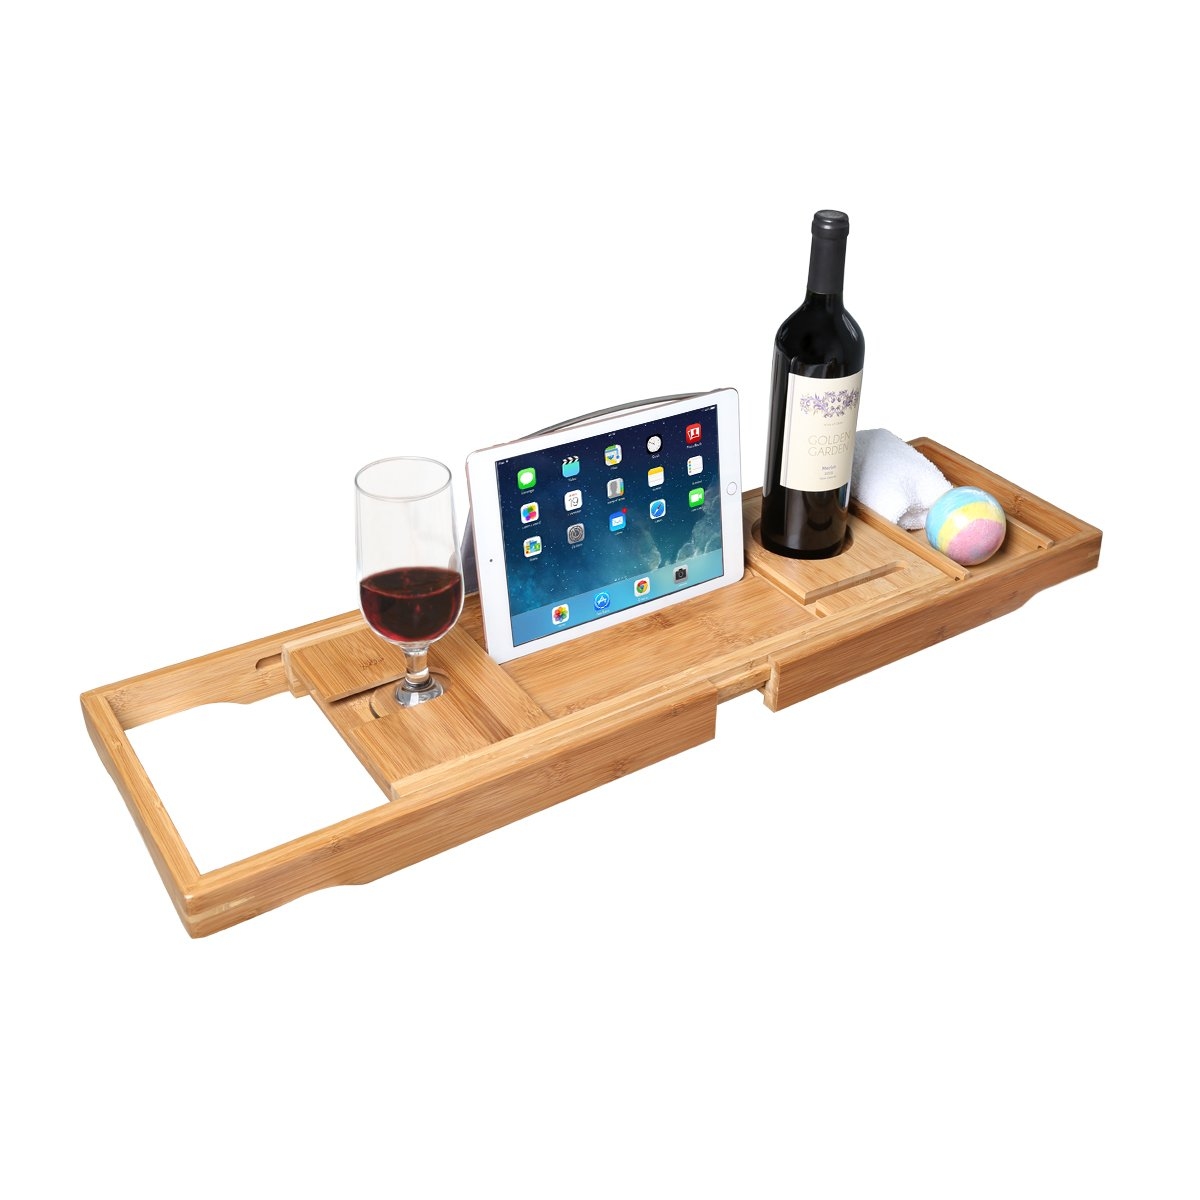 Bathtub Caddy Tray with Book Tablet Wine Holder for Reading & Relaxing - Made from Natural Bamboo, Over Bathtub Tray with Extending Sides AntArt